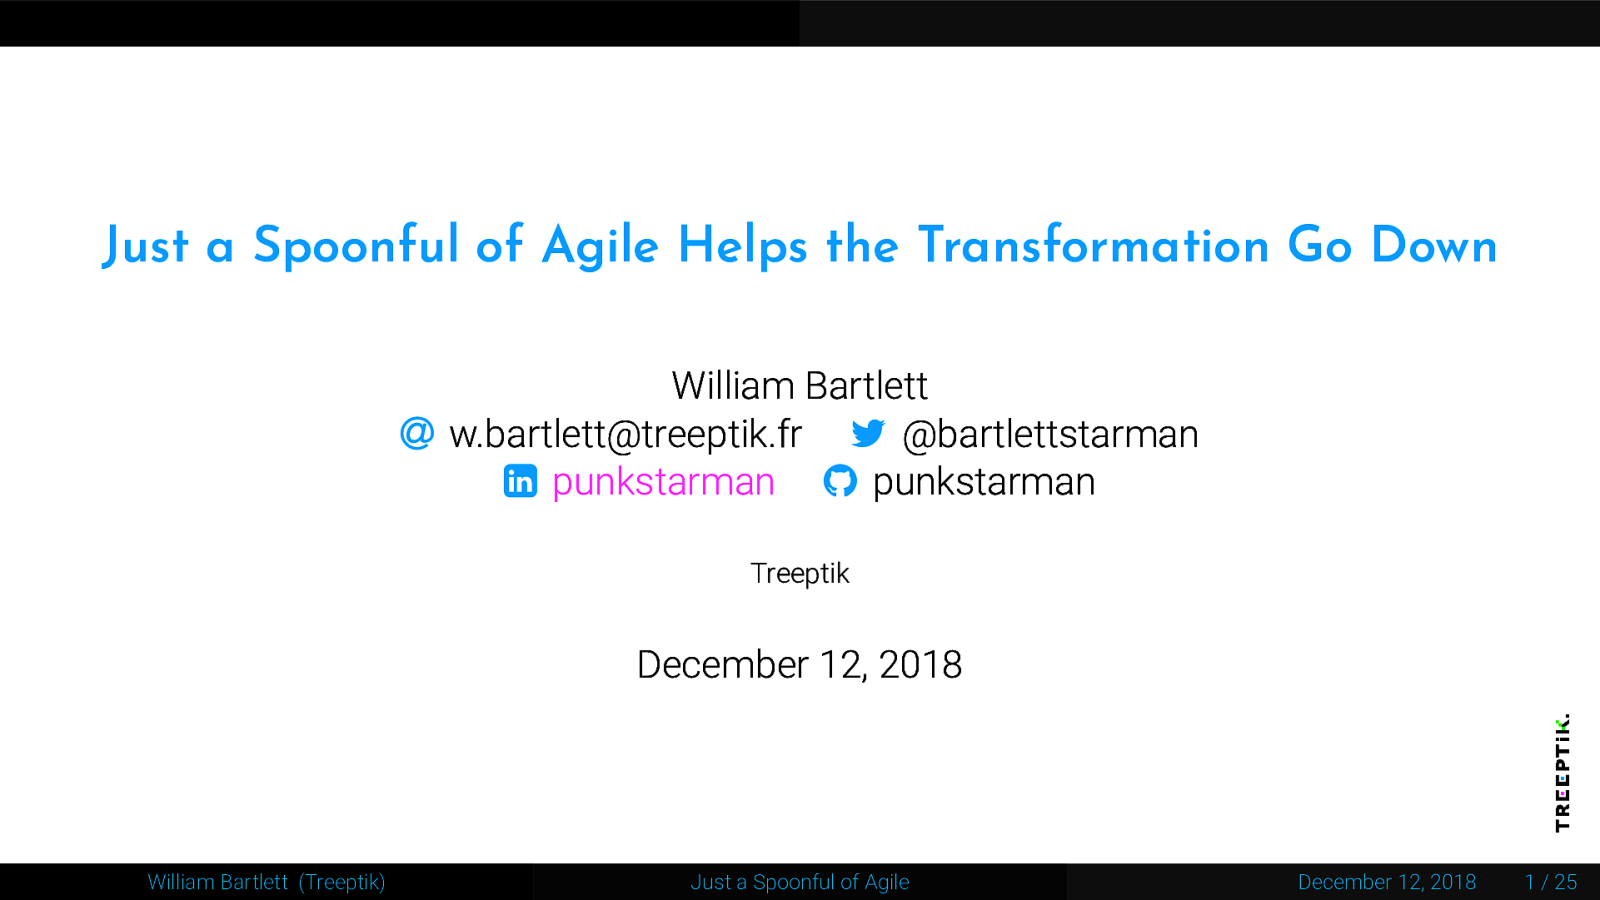 Just a Spoonful of Agile Helps the Transformation Go Down